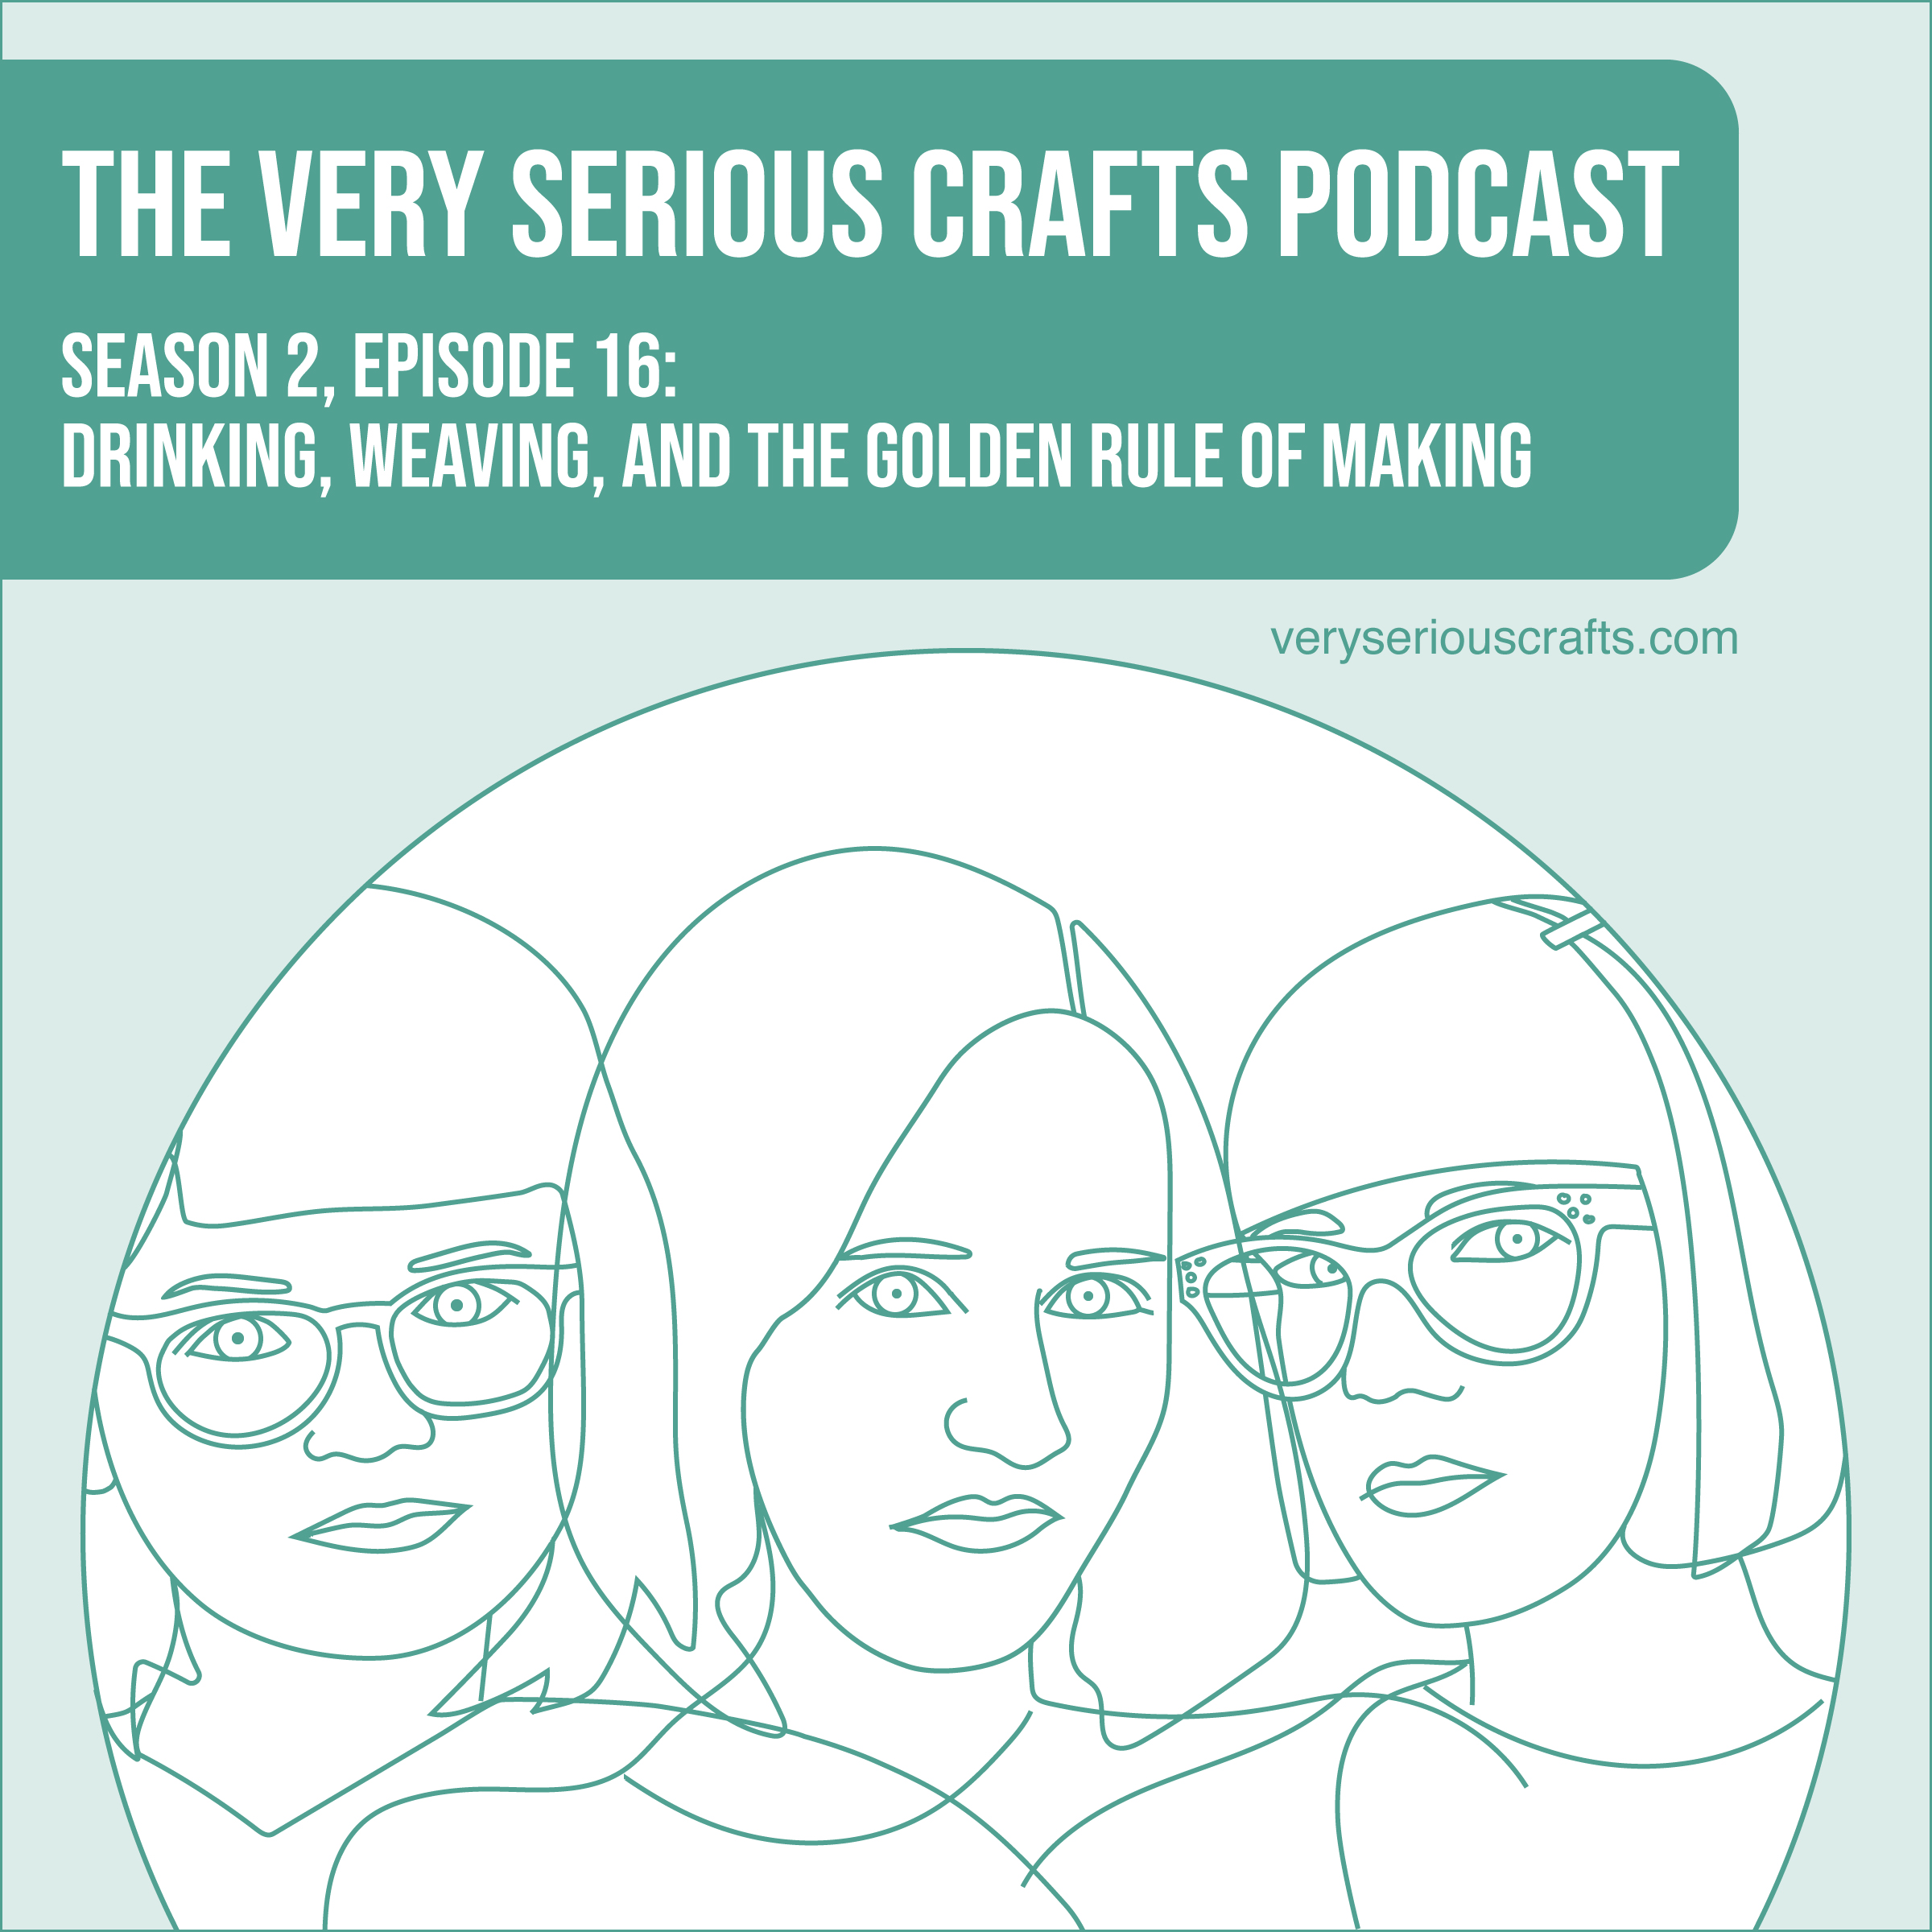 The Very Serious Crafts Podcast, Season 2: Episode 16 – Drinking, Weaving, and the Golden Rule of Making